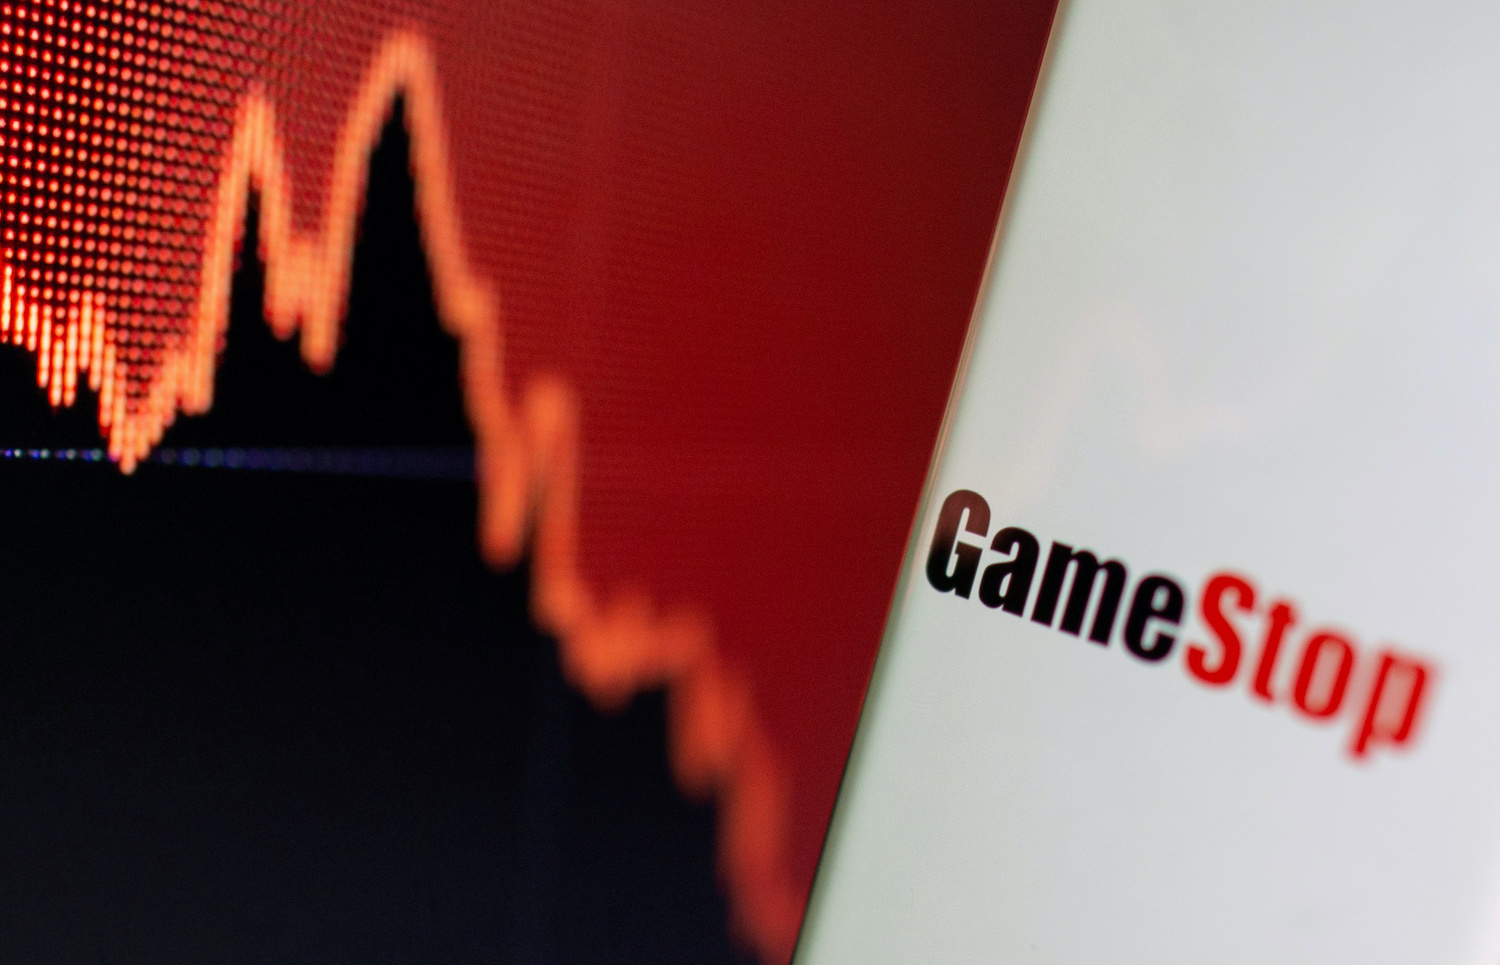 GameStop shares enjoy power boost after cryptic tweet by shareholder